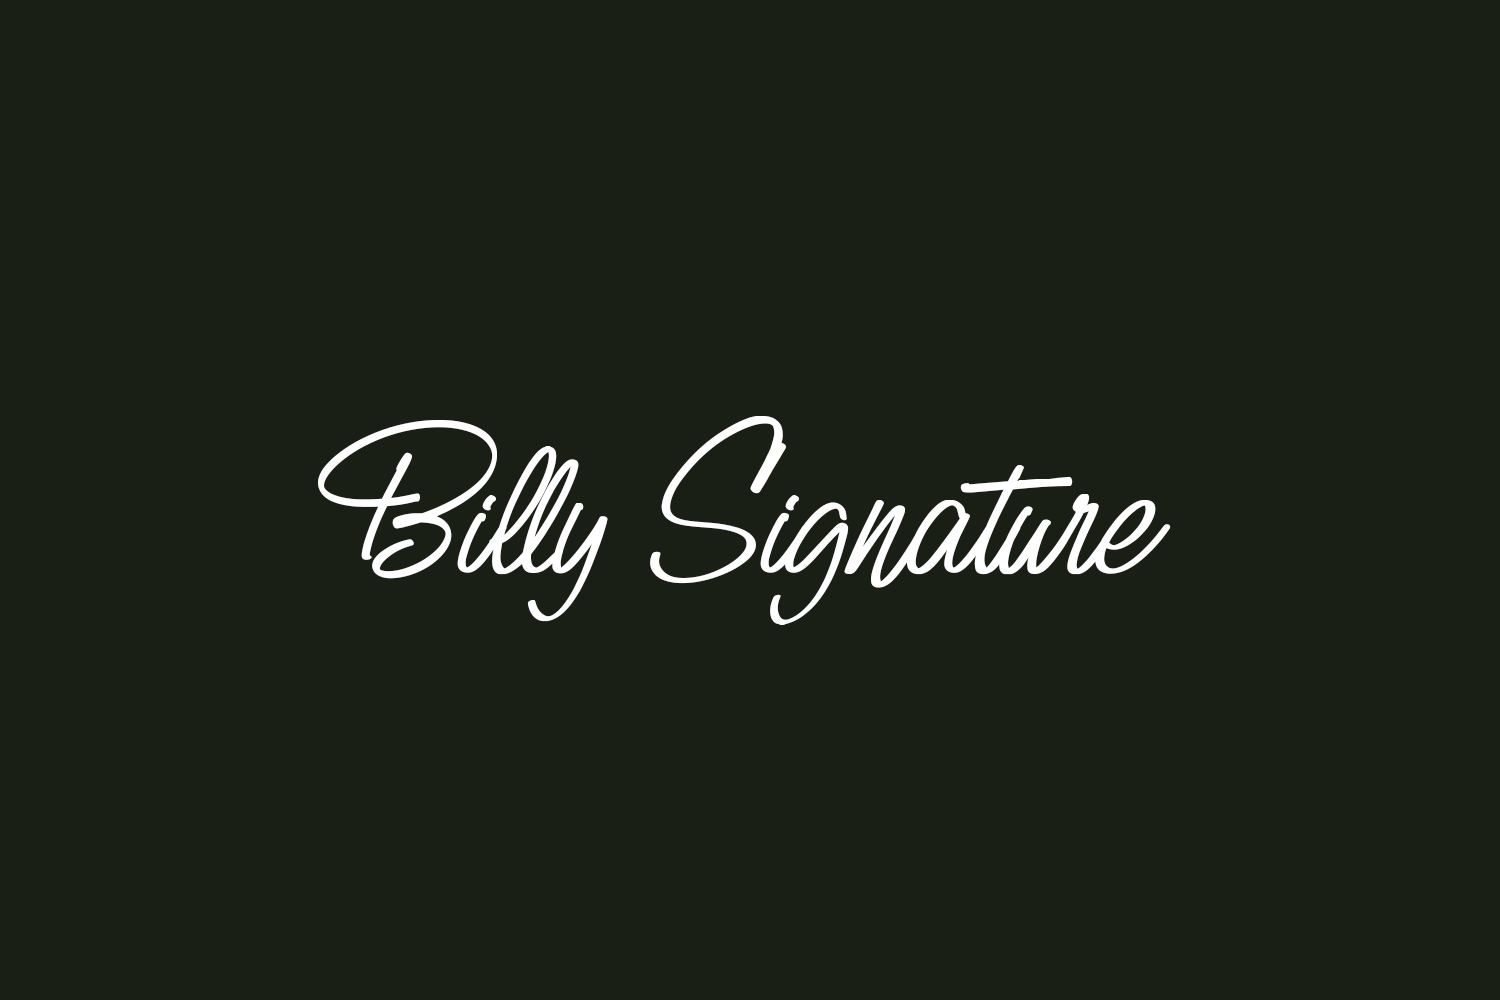 Billy Signature Free Font